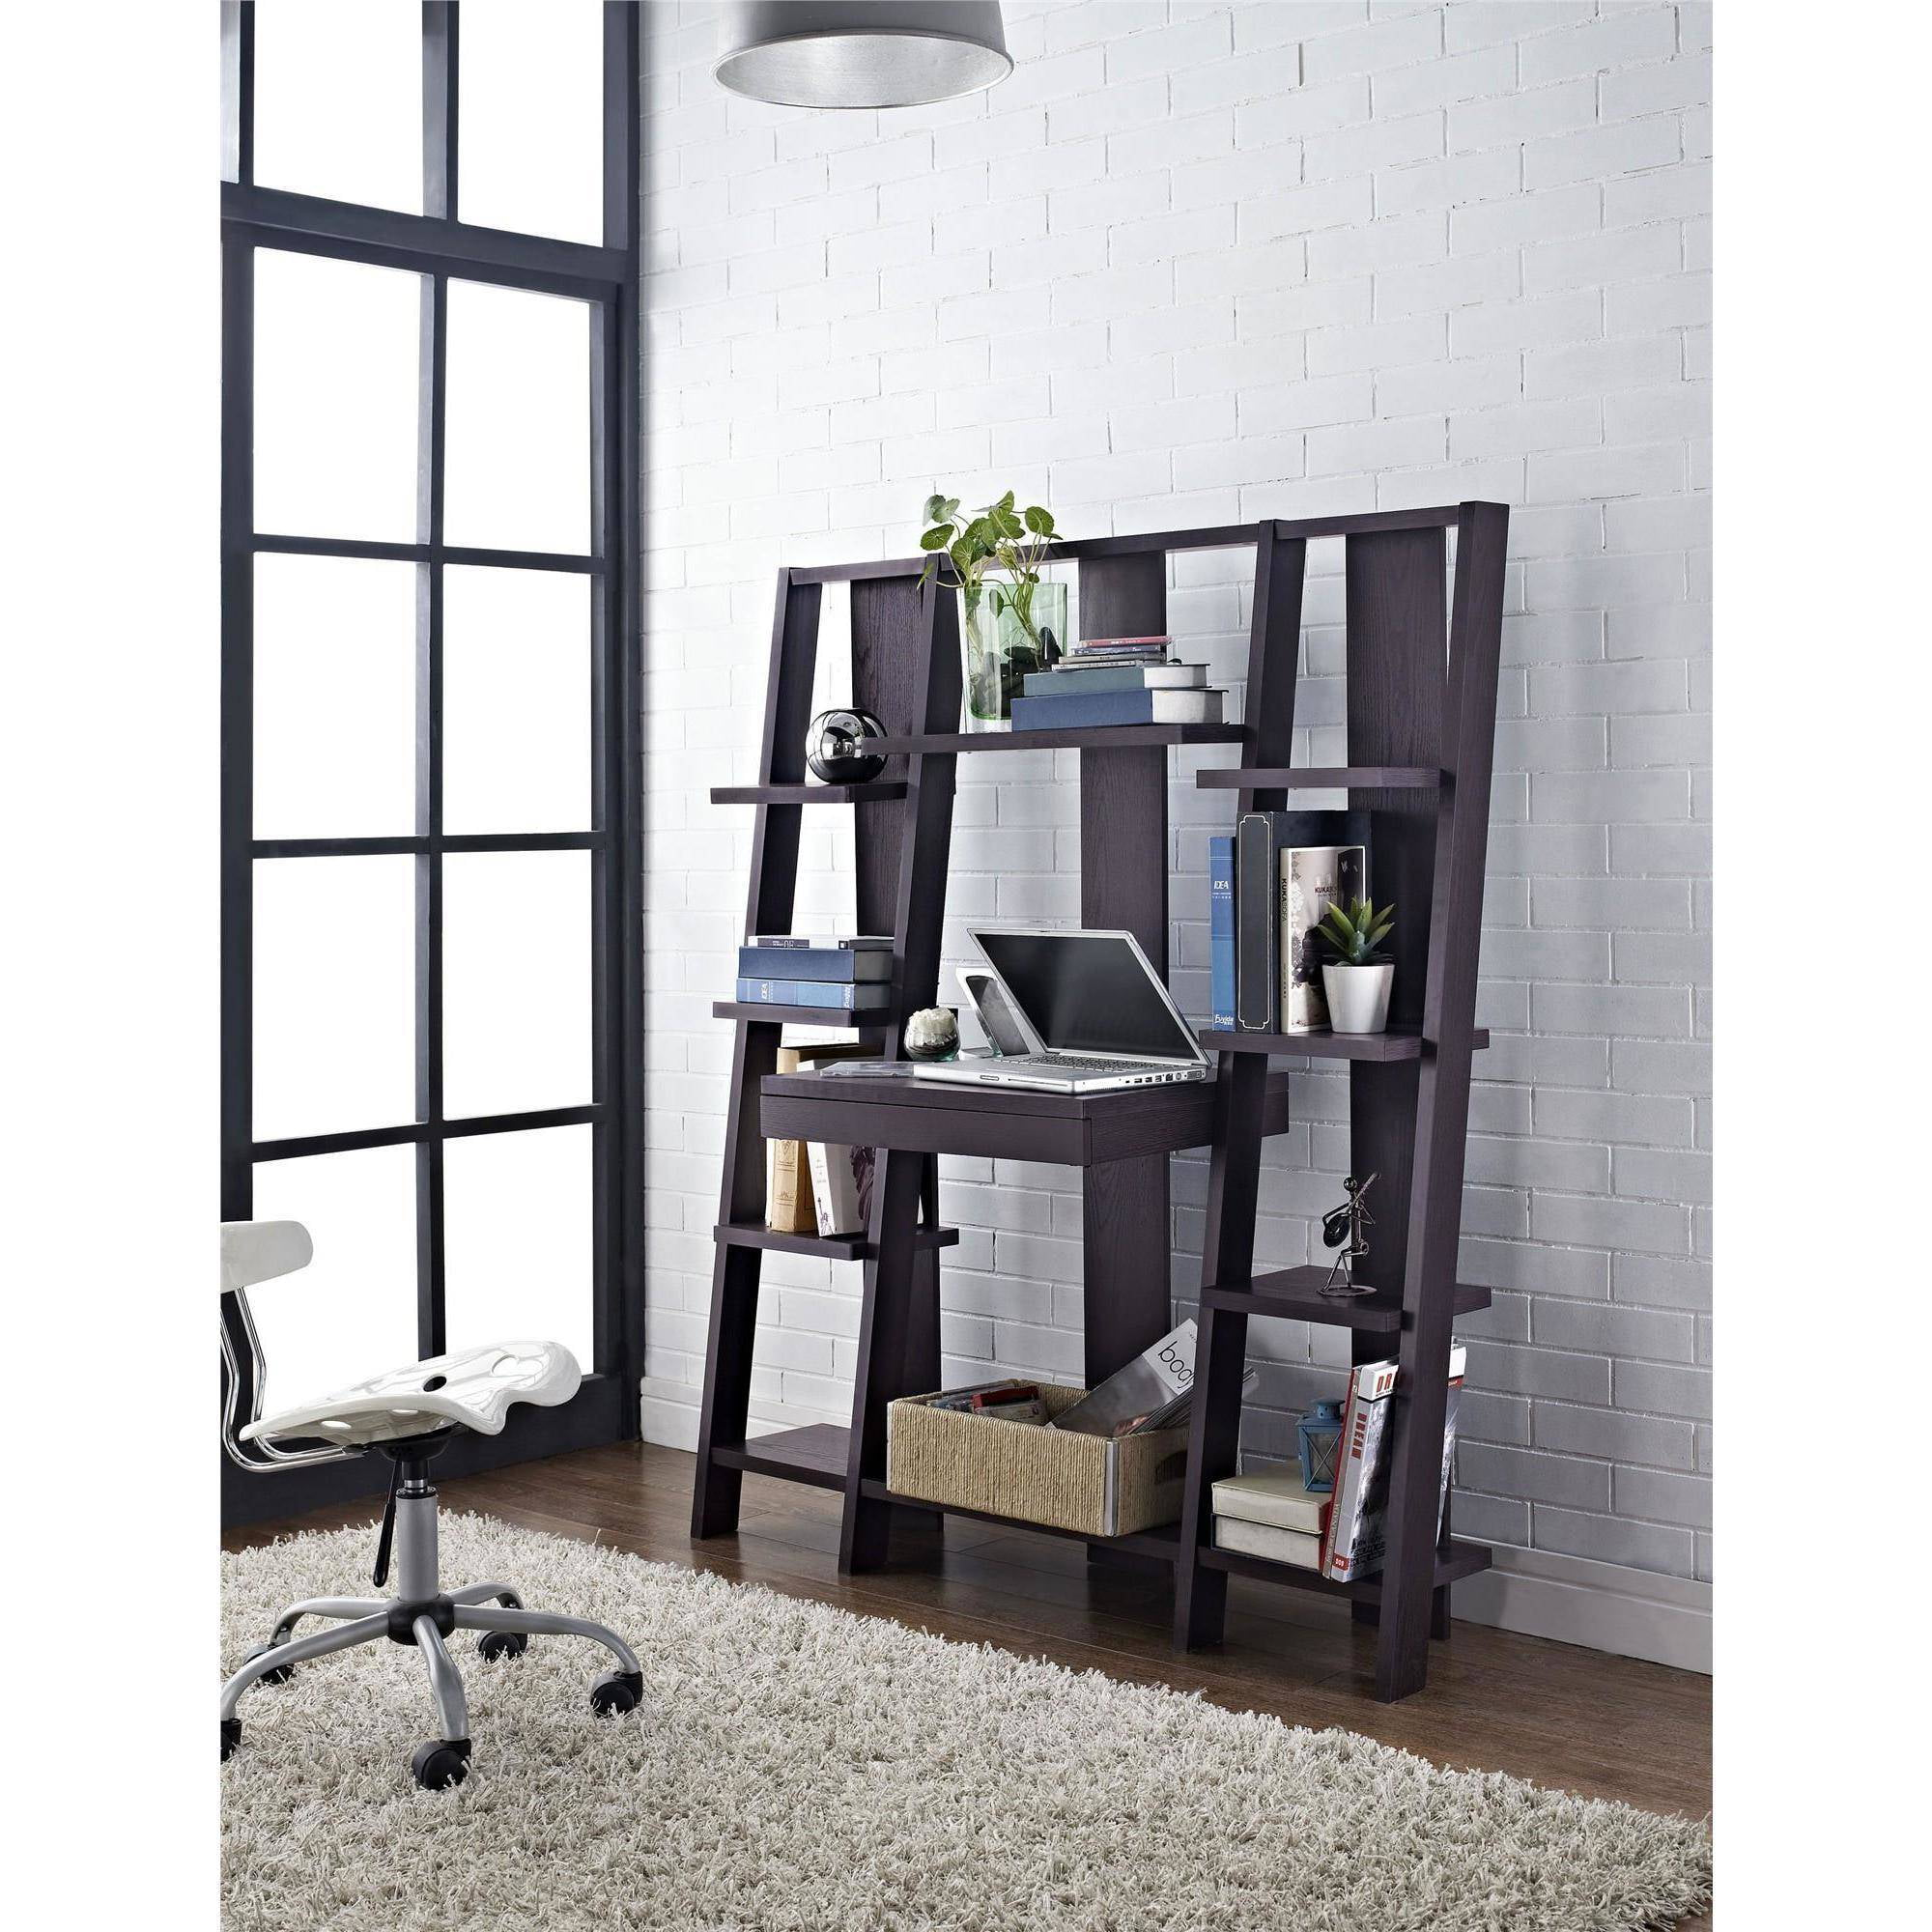 Altra Furniture Ladder Bookcase With Desk In Espresso Finish